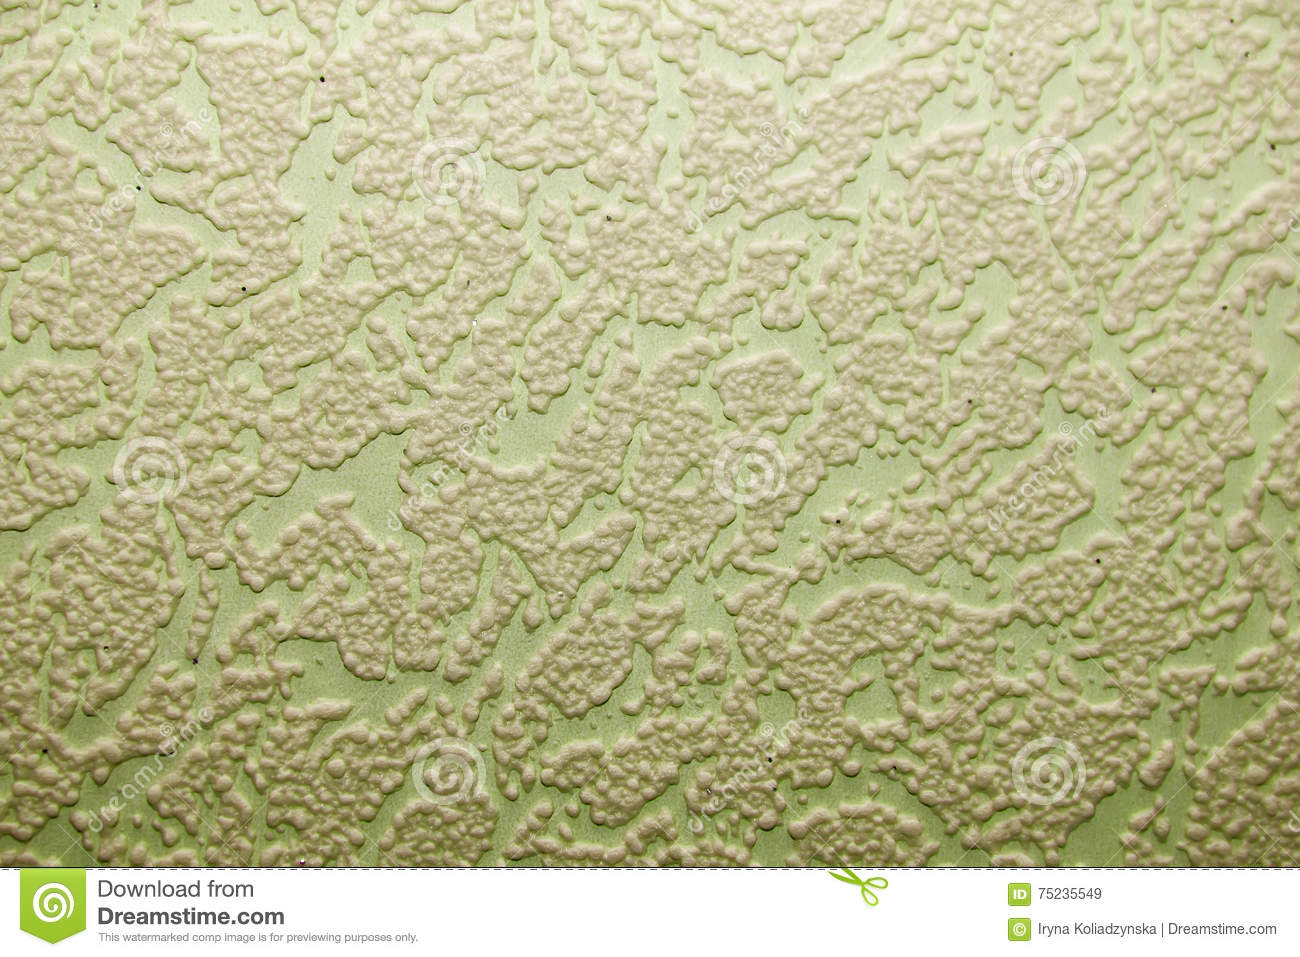 textura del papel pintado papel decorativo para la decoracin pared foto de archivo